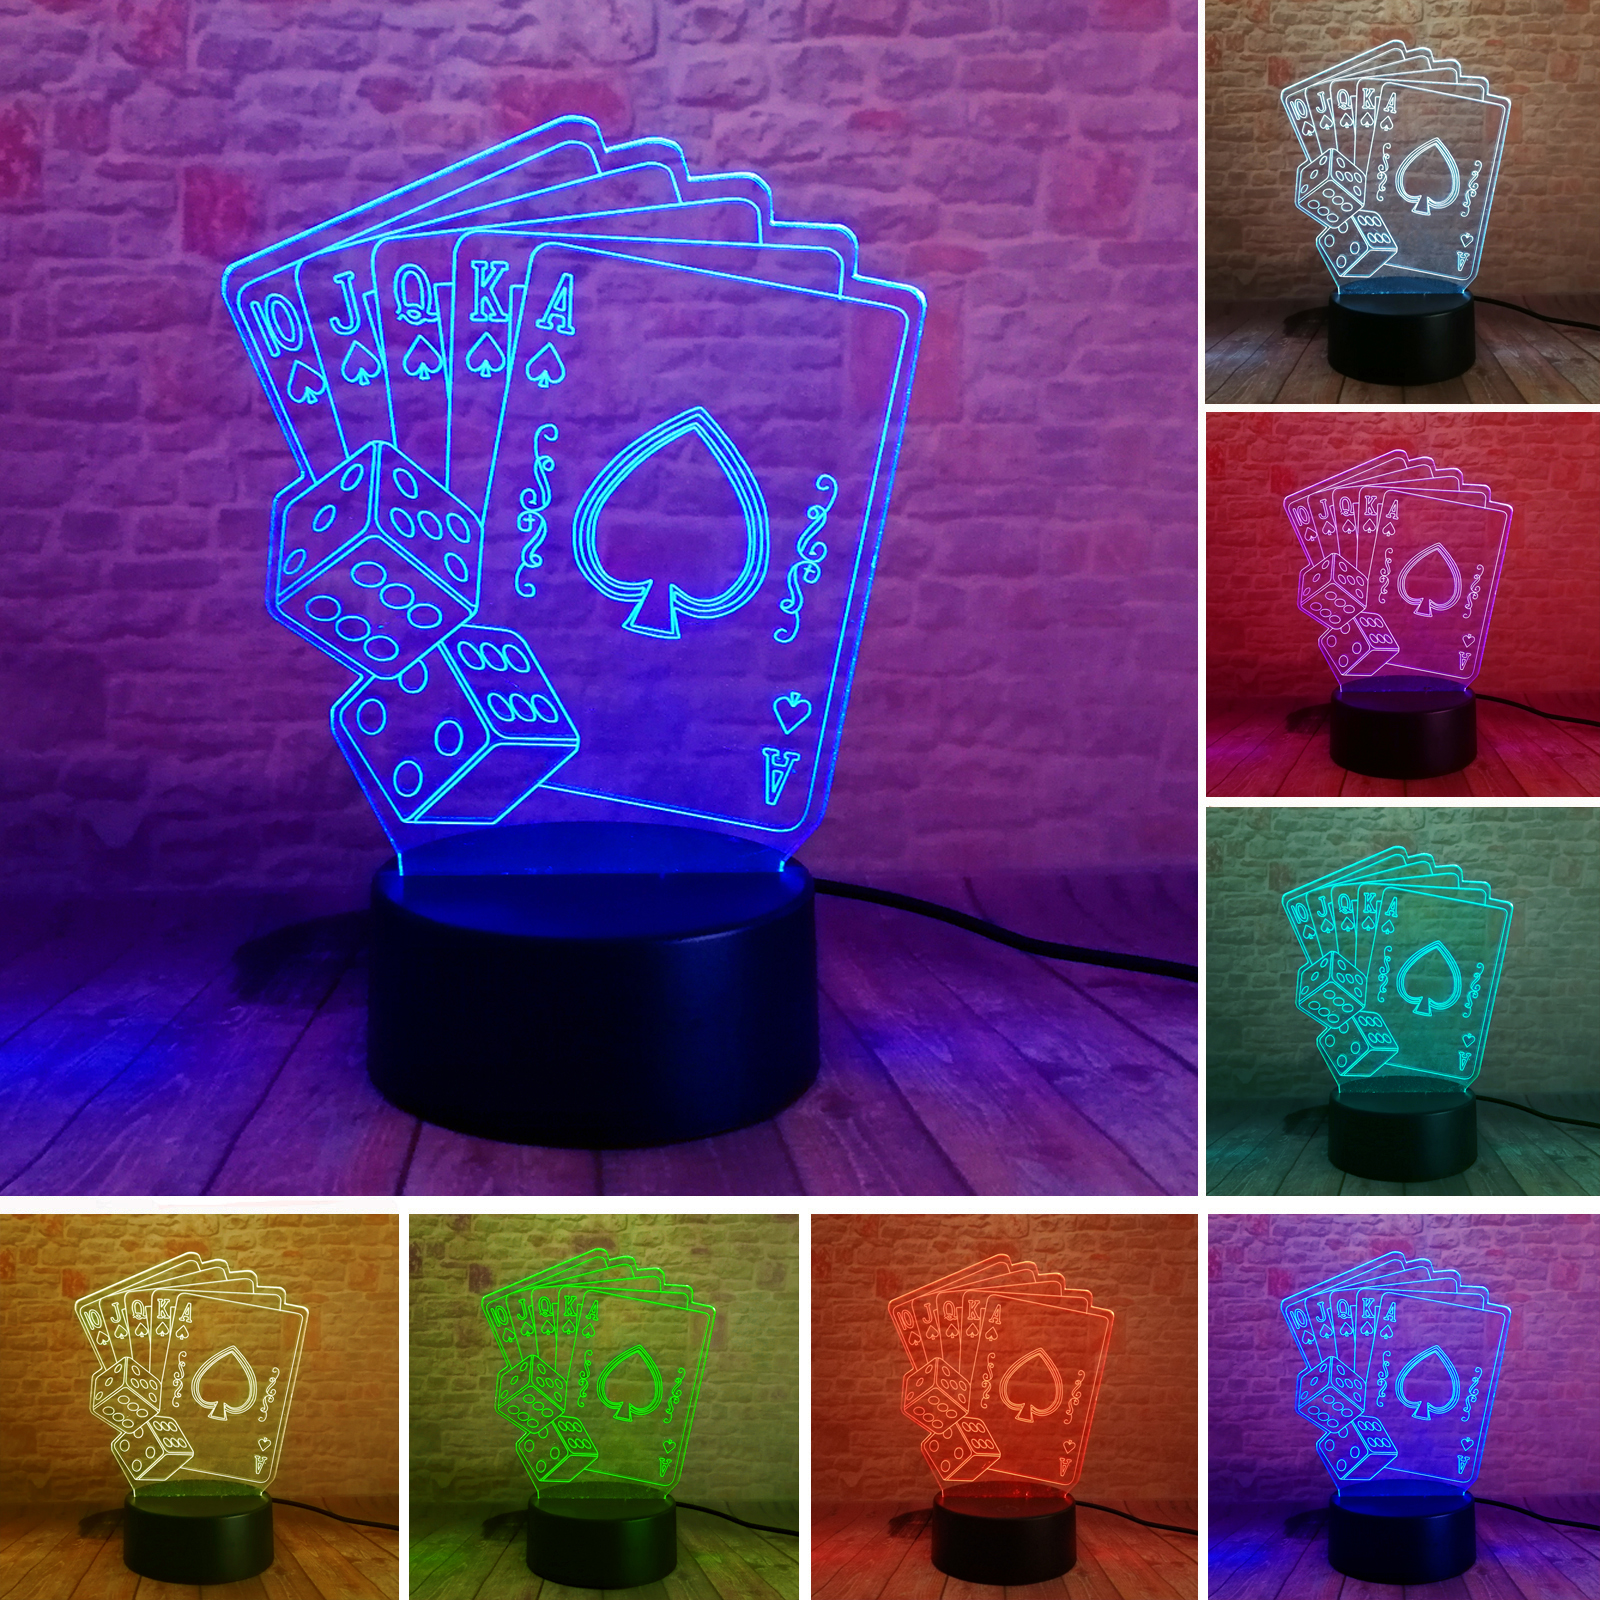 New Texas Hold EM Dadi Poker Picche giocando 7 colori sfumati gradiente luci a led Home Cafe Bar Decor regali di Natale Trasporto di goccia